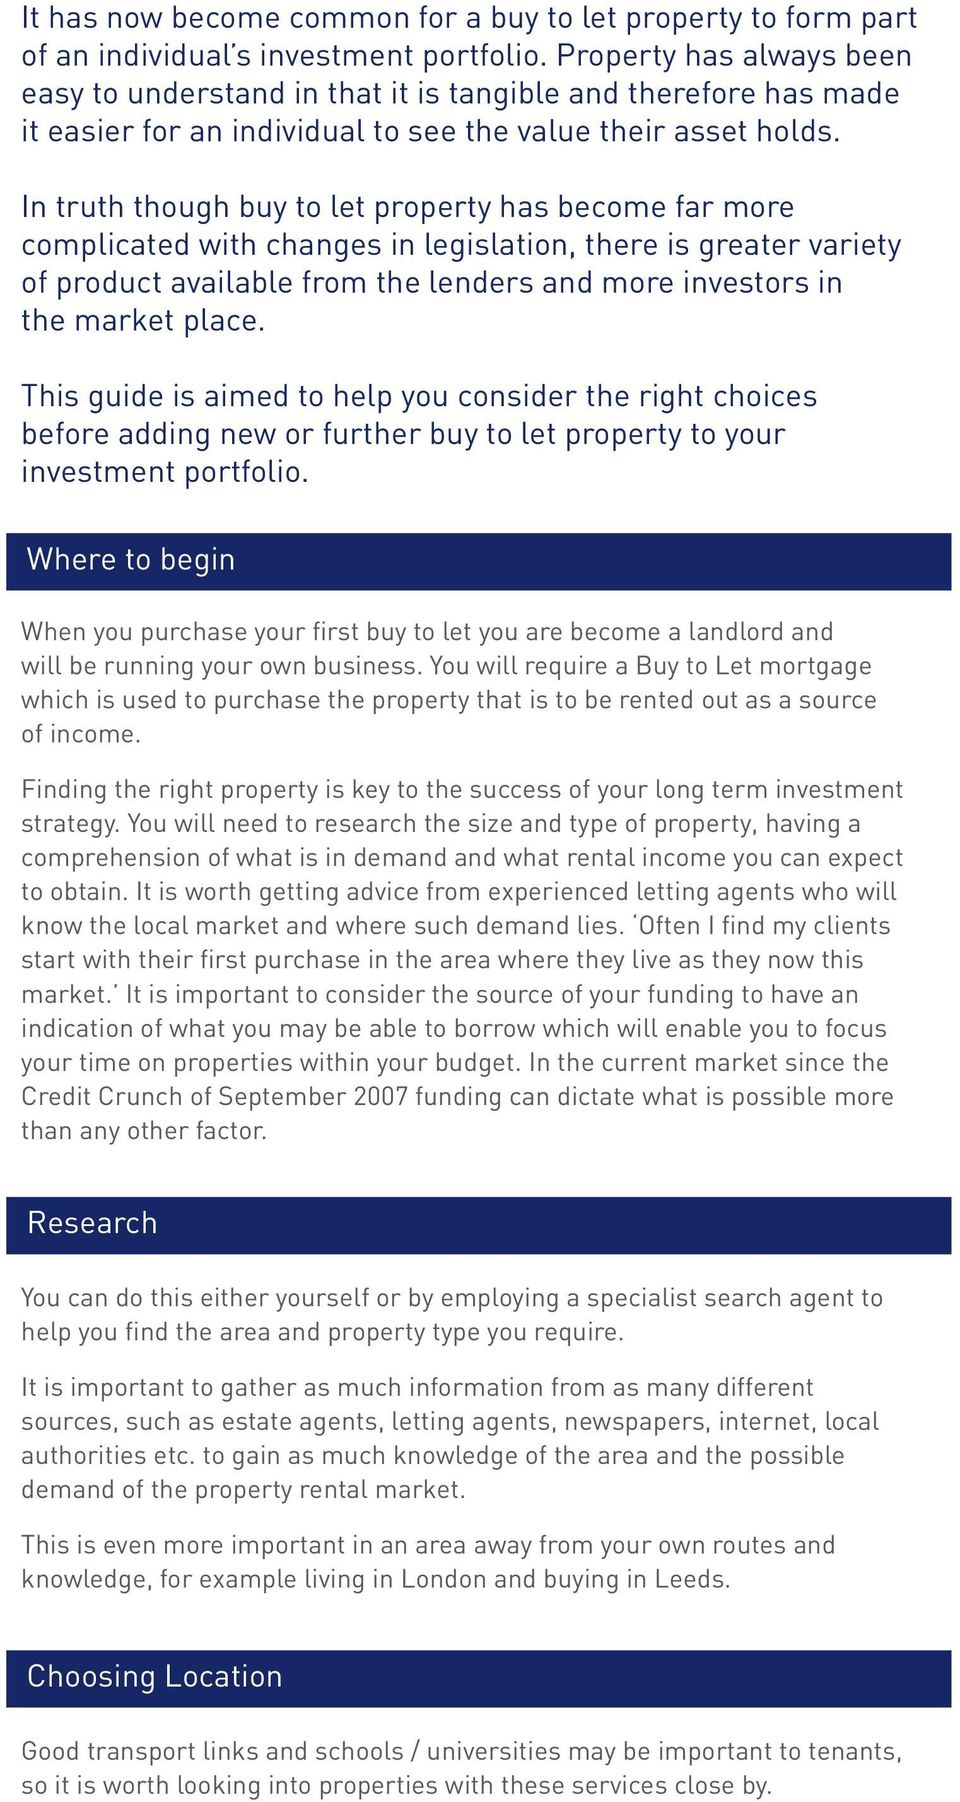 In truth though buy to let property has become far more complicated with changes in legislation, there is greater variety of product available from the lenders and more investors in the market place.